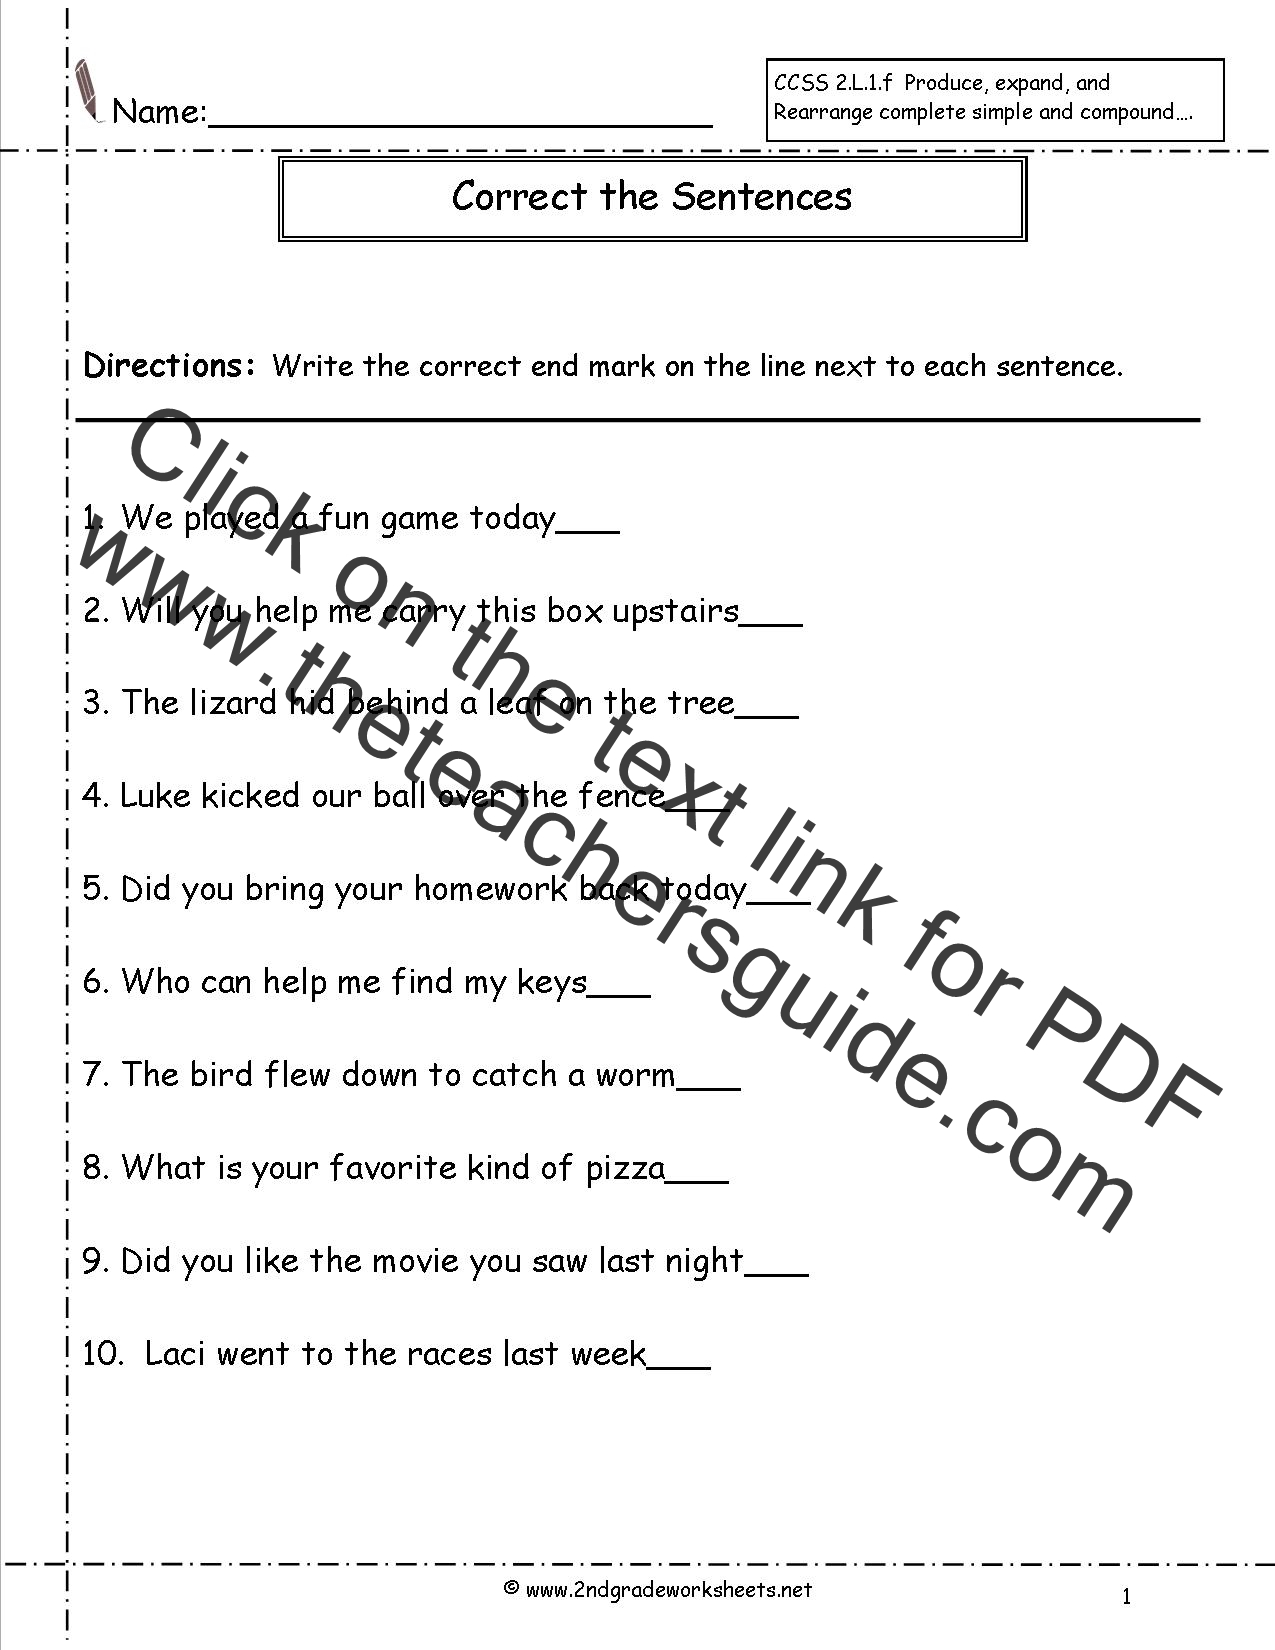 Second Grade Sentences Worksheets CCSS 2L1f Worksheets – Correcting Sentences Worksheets